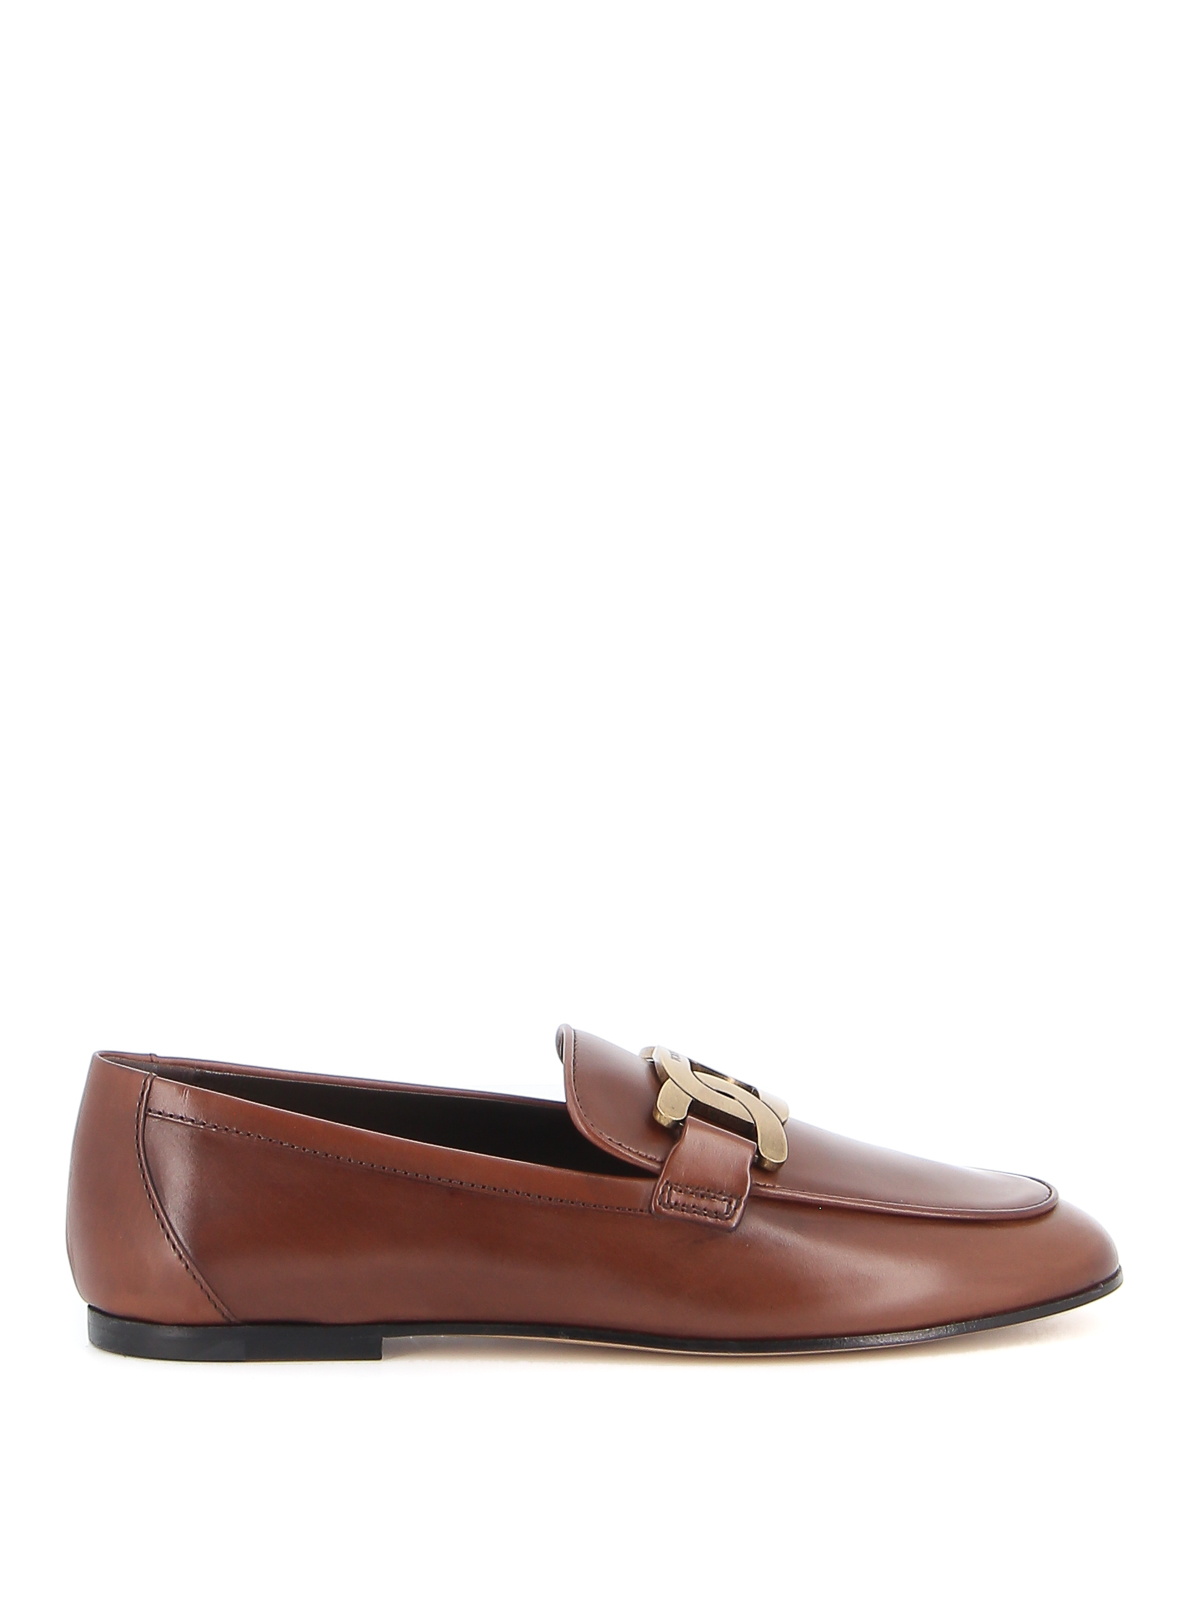 TOD'S SMOOTH LEATHER LOAFERS